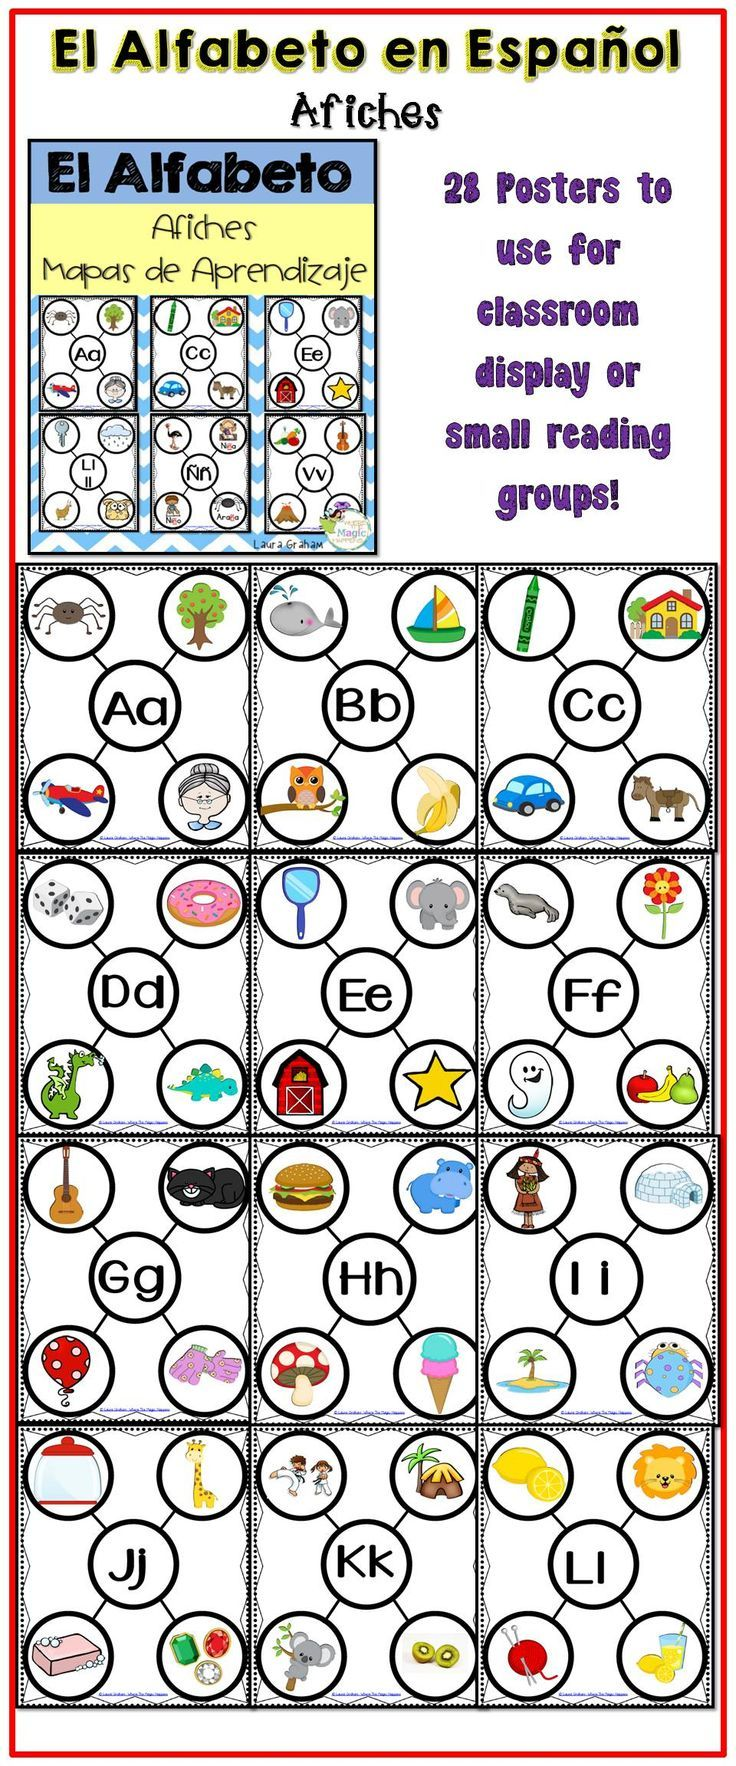 Alphabet posters in Spanish for  bilingual classrooms. Perfect for phonemic awareness.